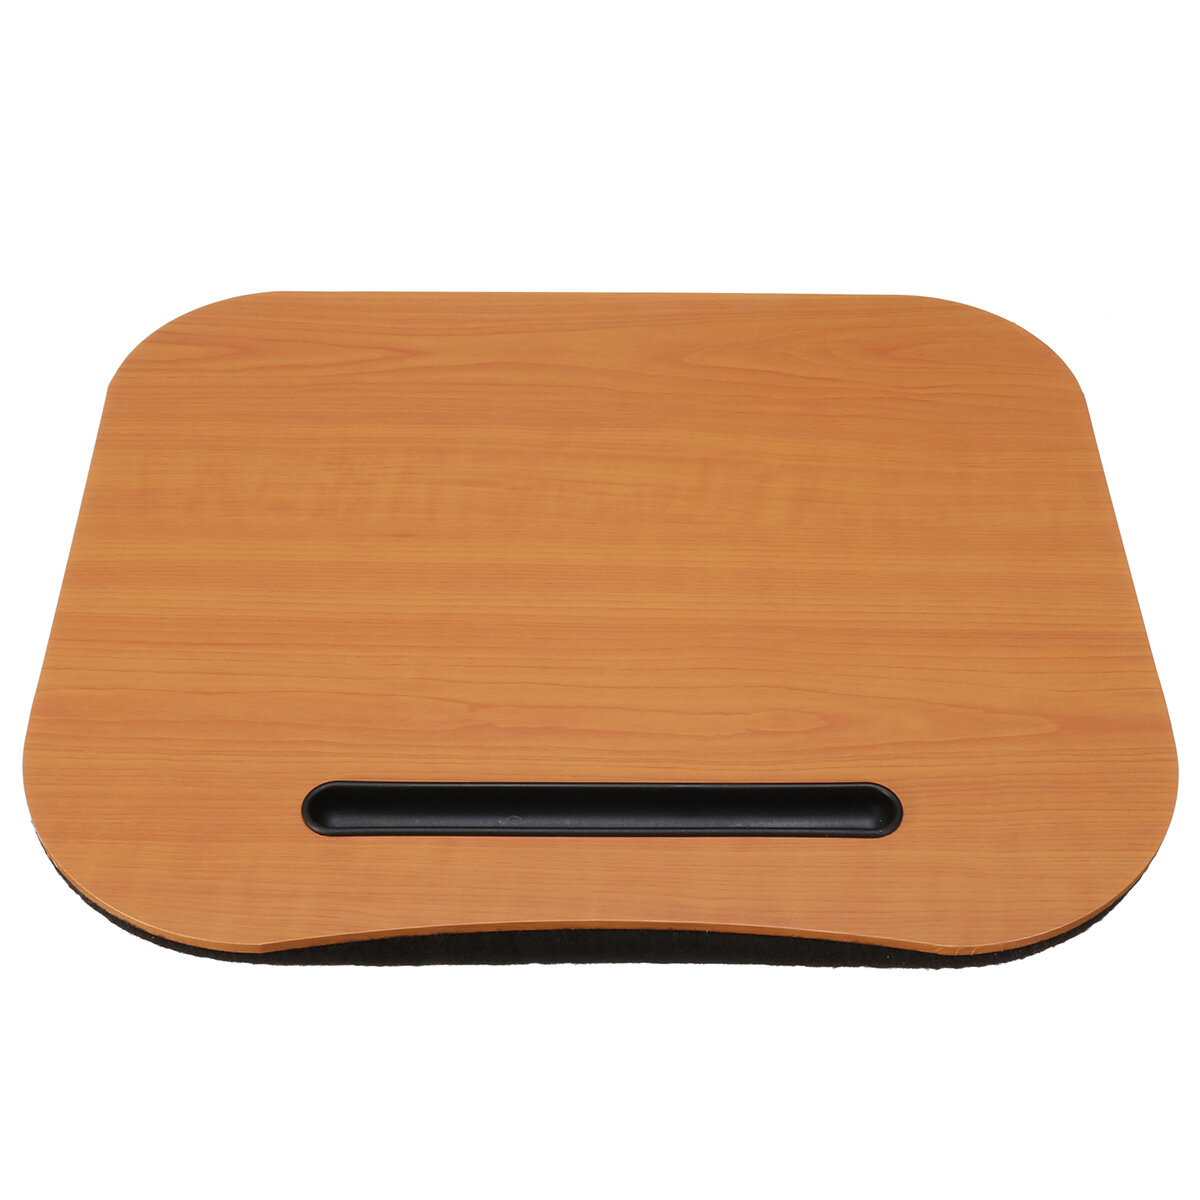 Lap Desk Lap Tray Multifunction Convenience Cushion Pillow Laptop Desk Knee Computer Portable Stand Outdoor Travel Home Office